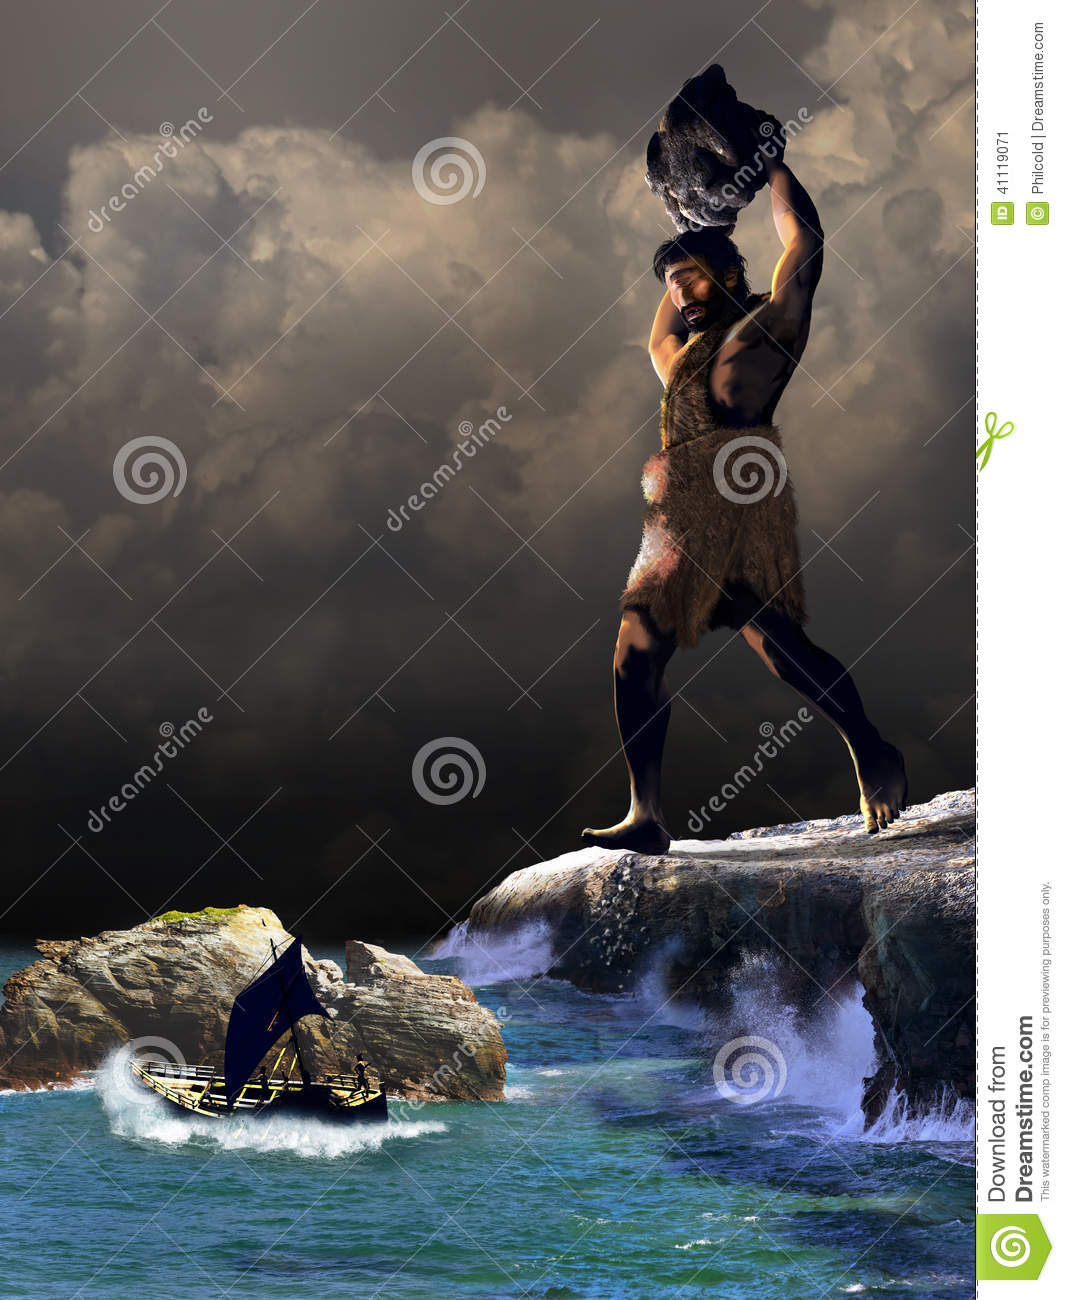 Taken from The Odyssey, scene representing the giant cyclops ...